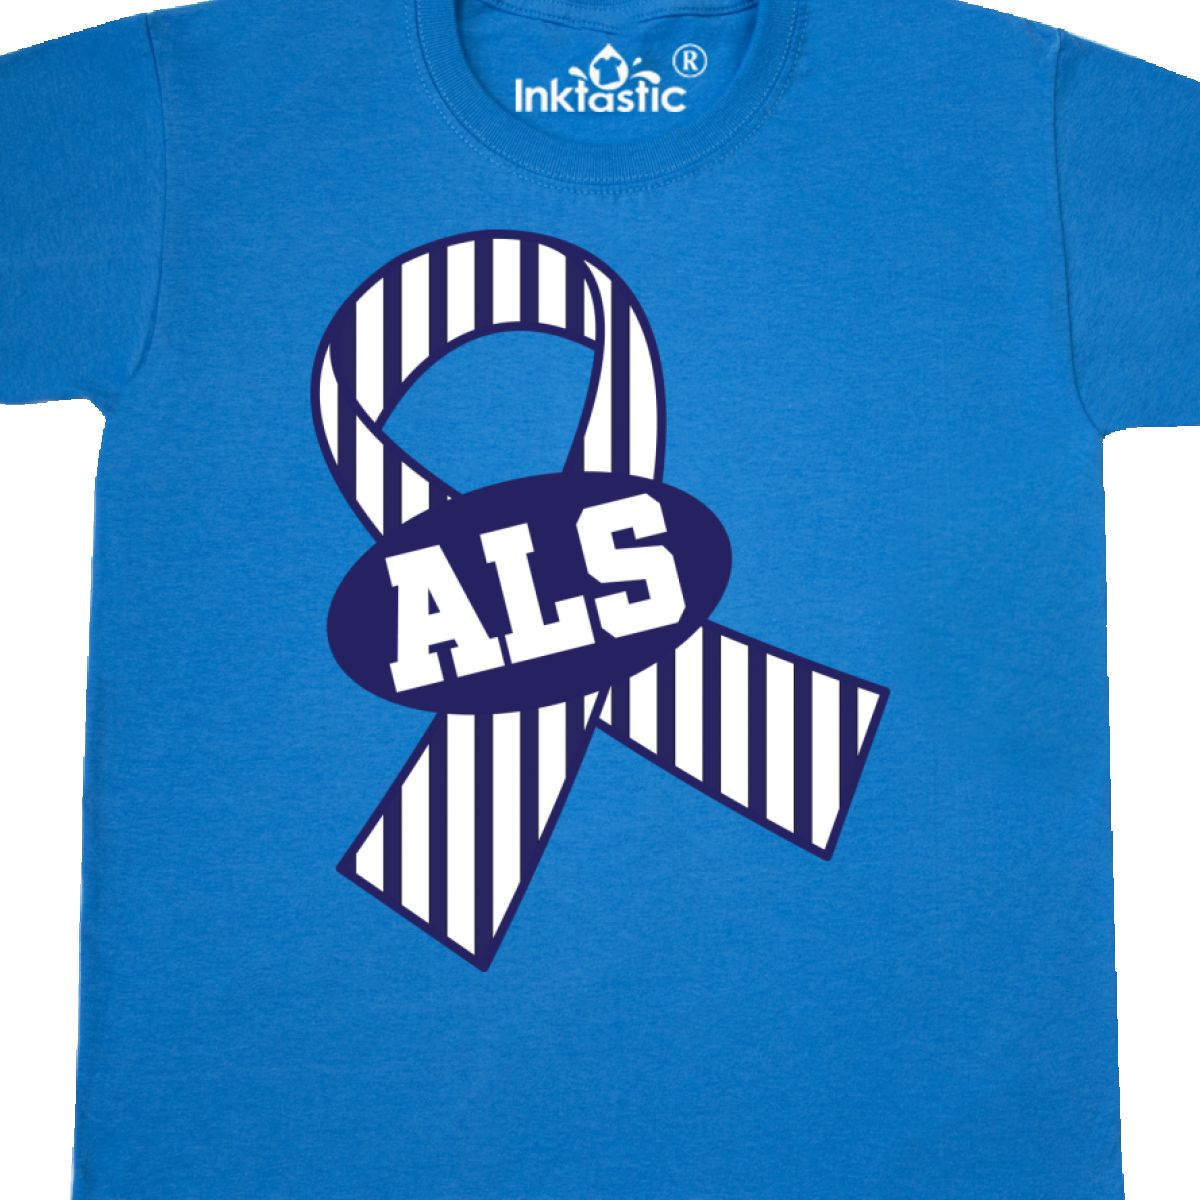 Details about Inktastic ALS Awareness Ribbon Youth T-Shirt Amyotrophic  Lateral Sclerosis Blue